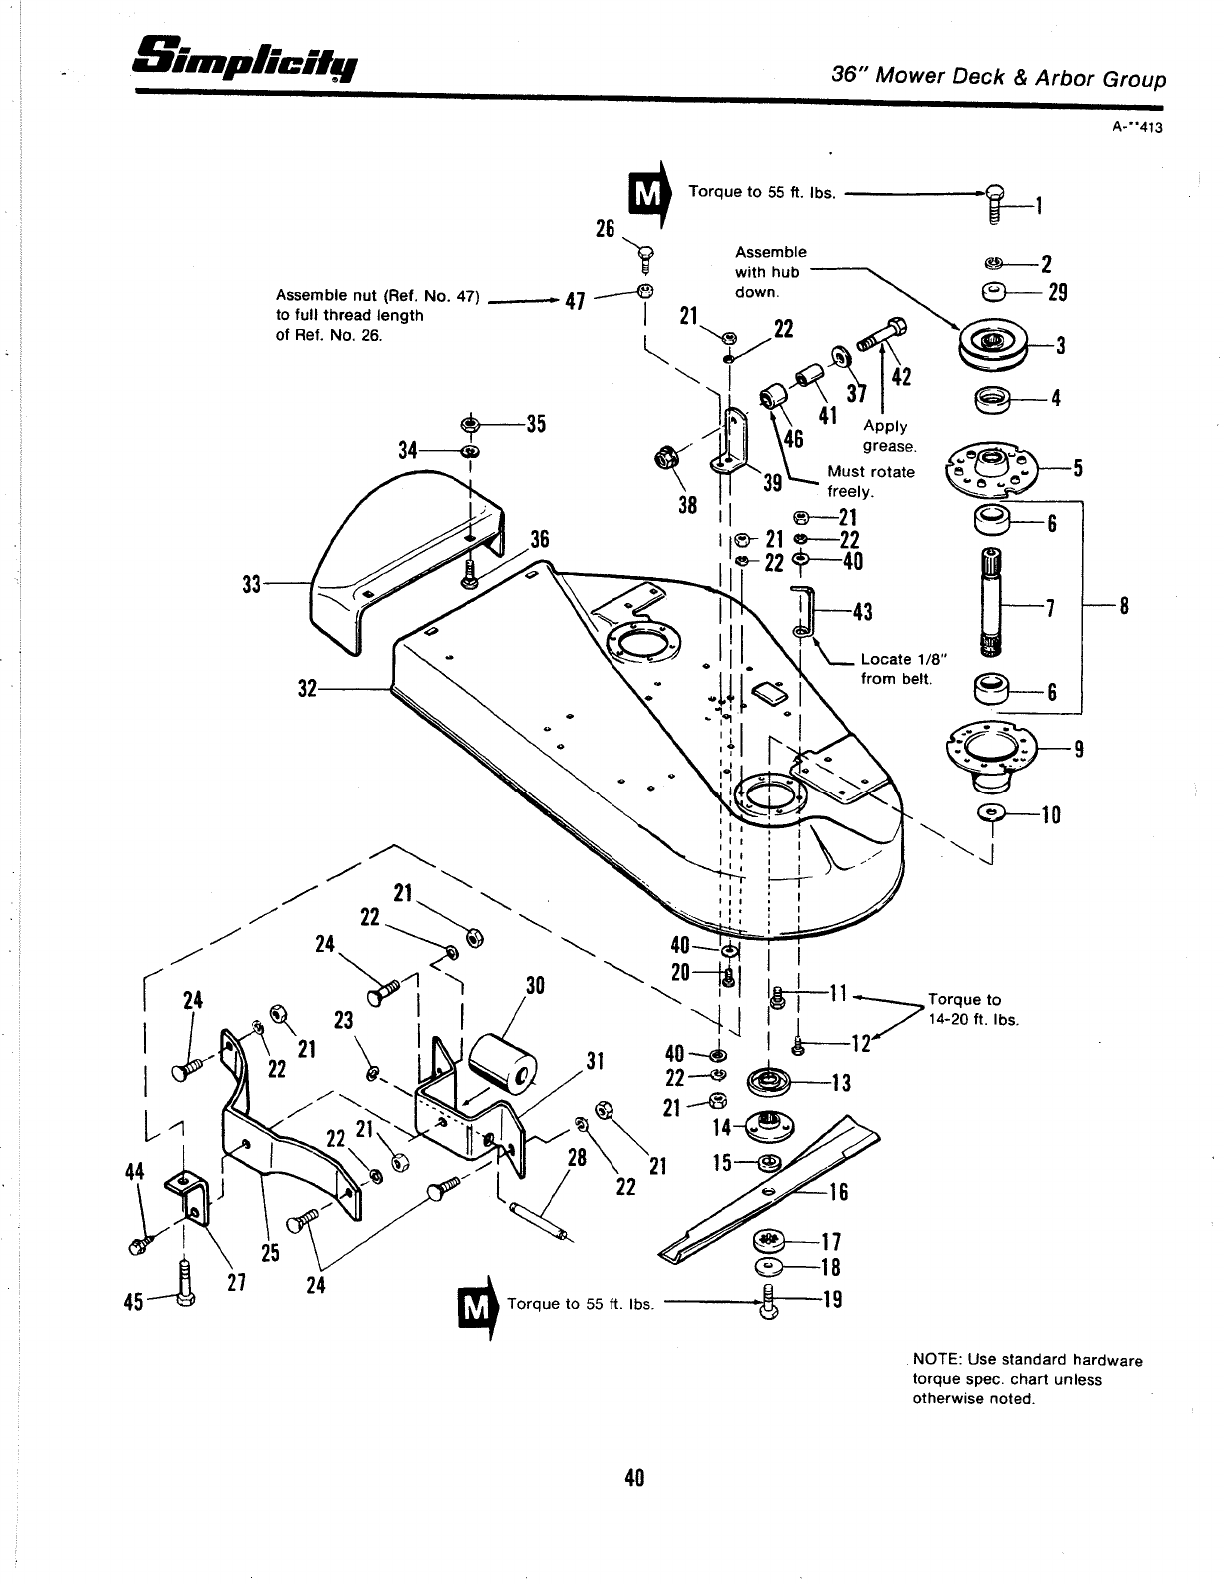 Page 42 of Simplicity Lawn Mower 3100 Series User Guide